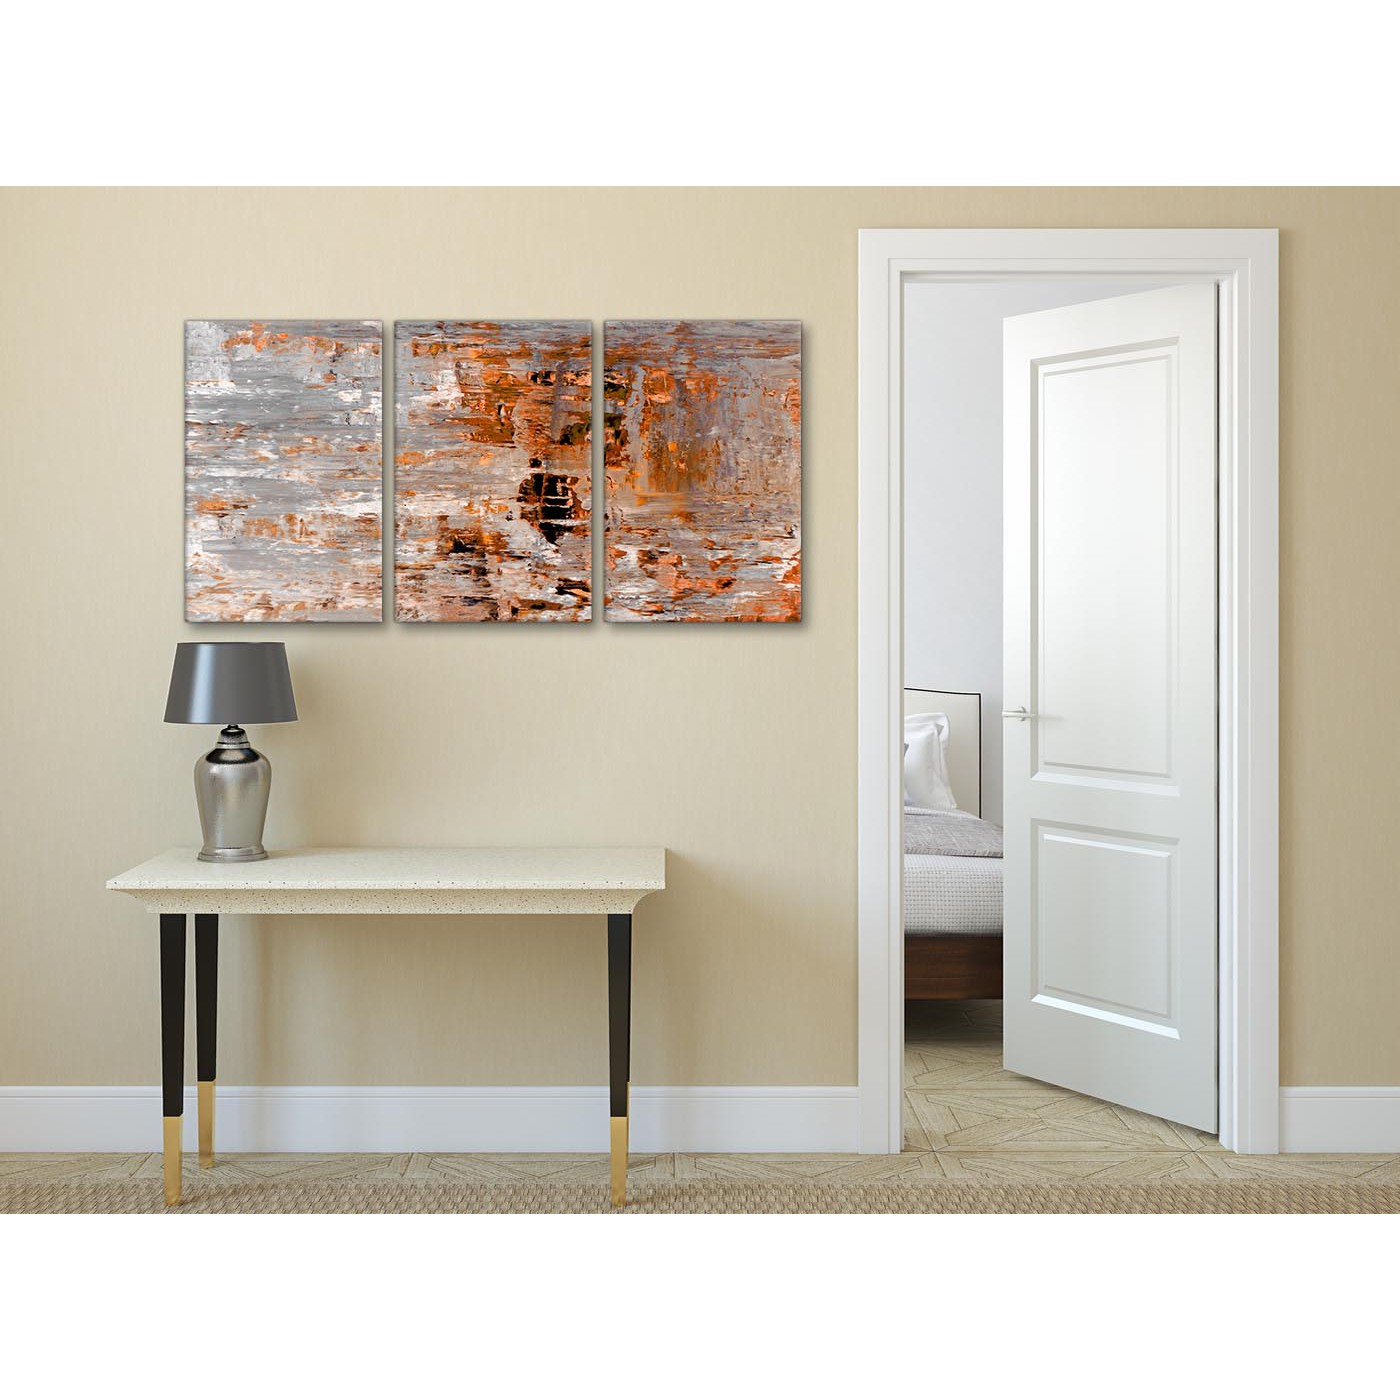 Burnt Orange Wall Paint Dining Room Contemporary With Aqua: 3 Panel Burnt Orange Grey Painting Dining Room Canvas Wall